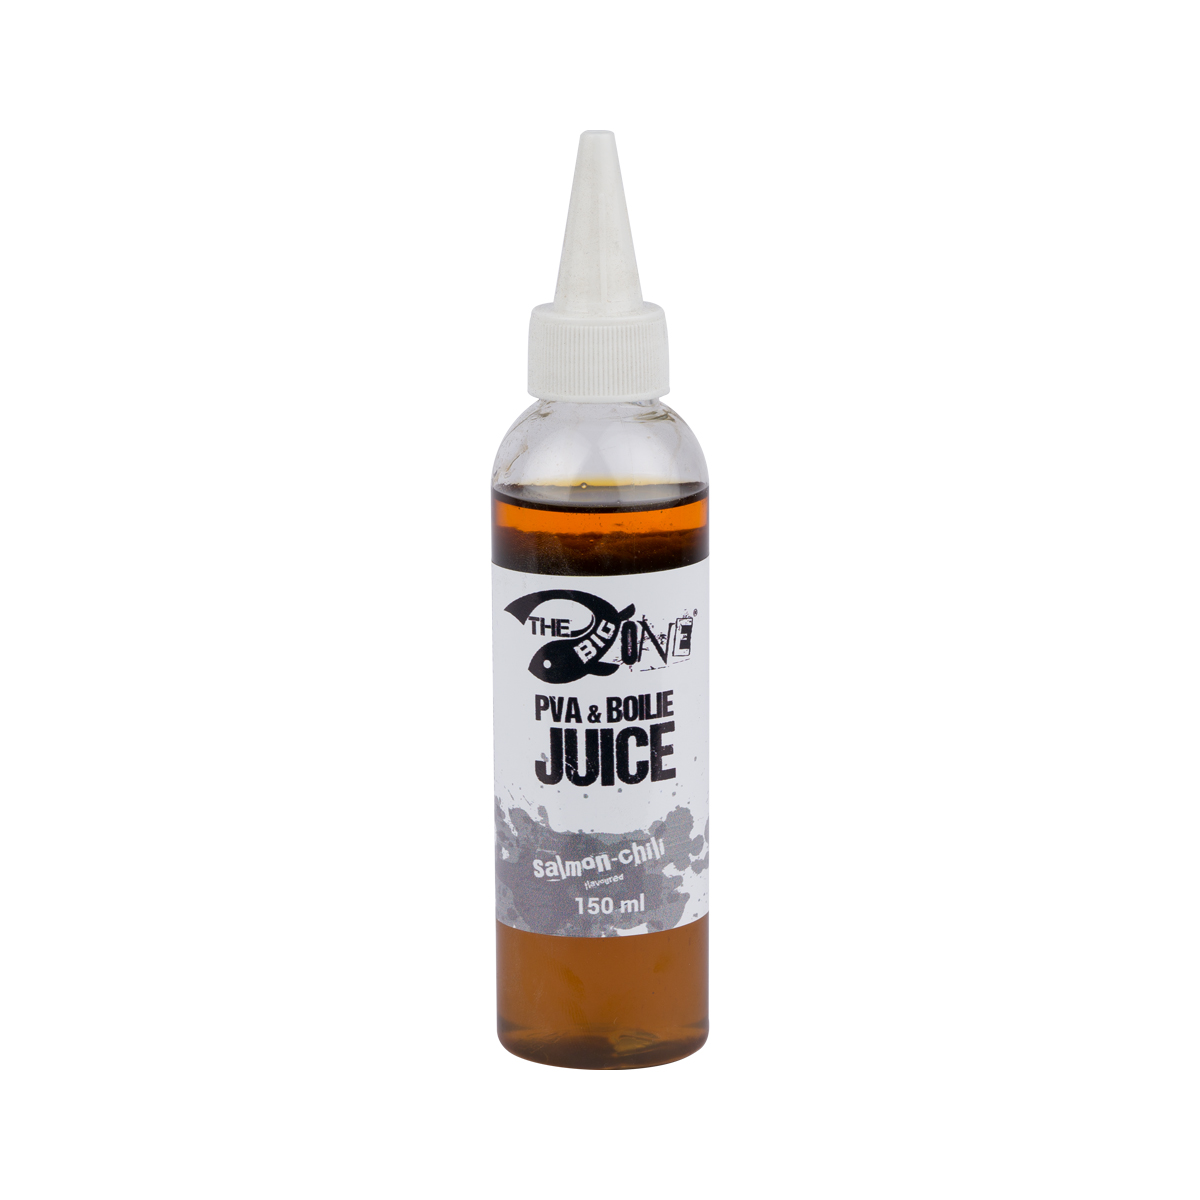 THE ONE PVA&BOILIE JUICE 150ML THE BIG ONE